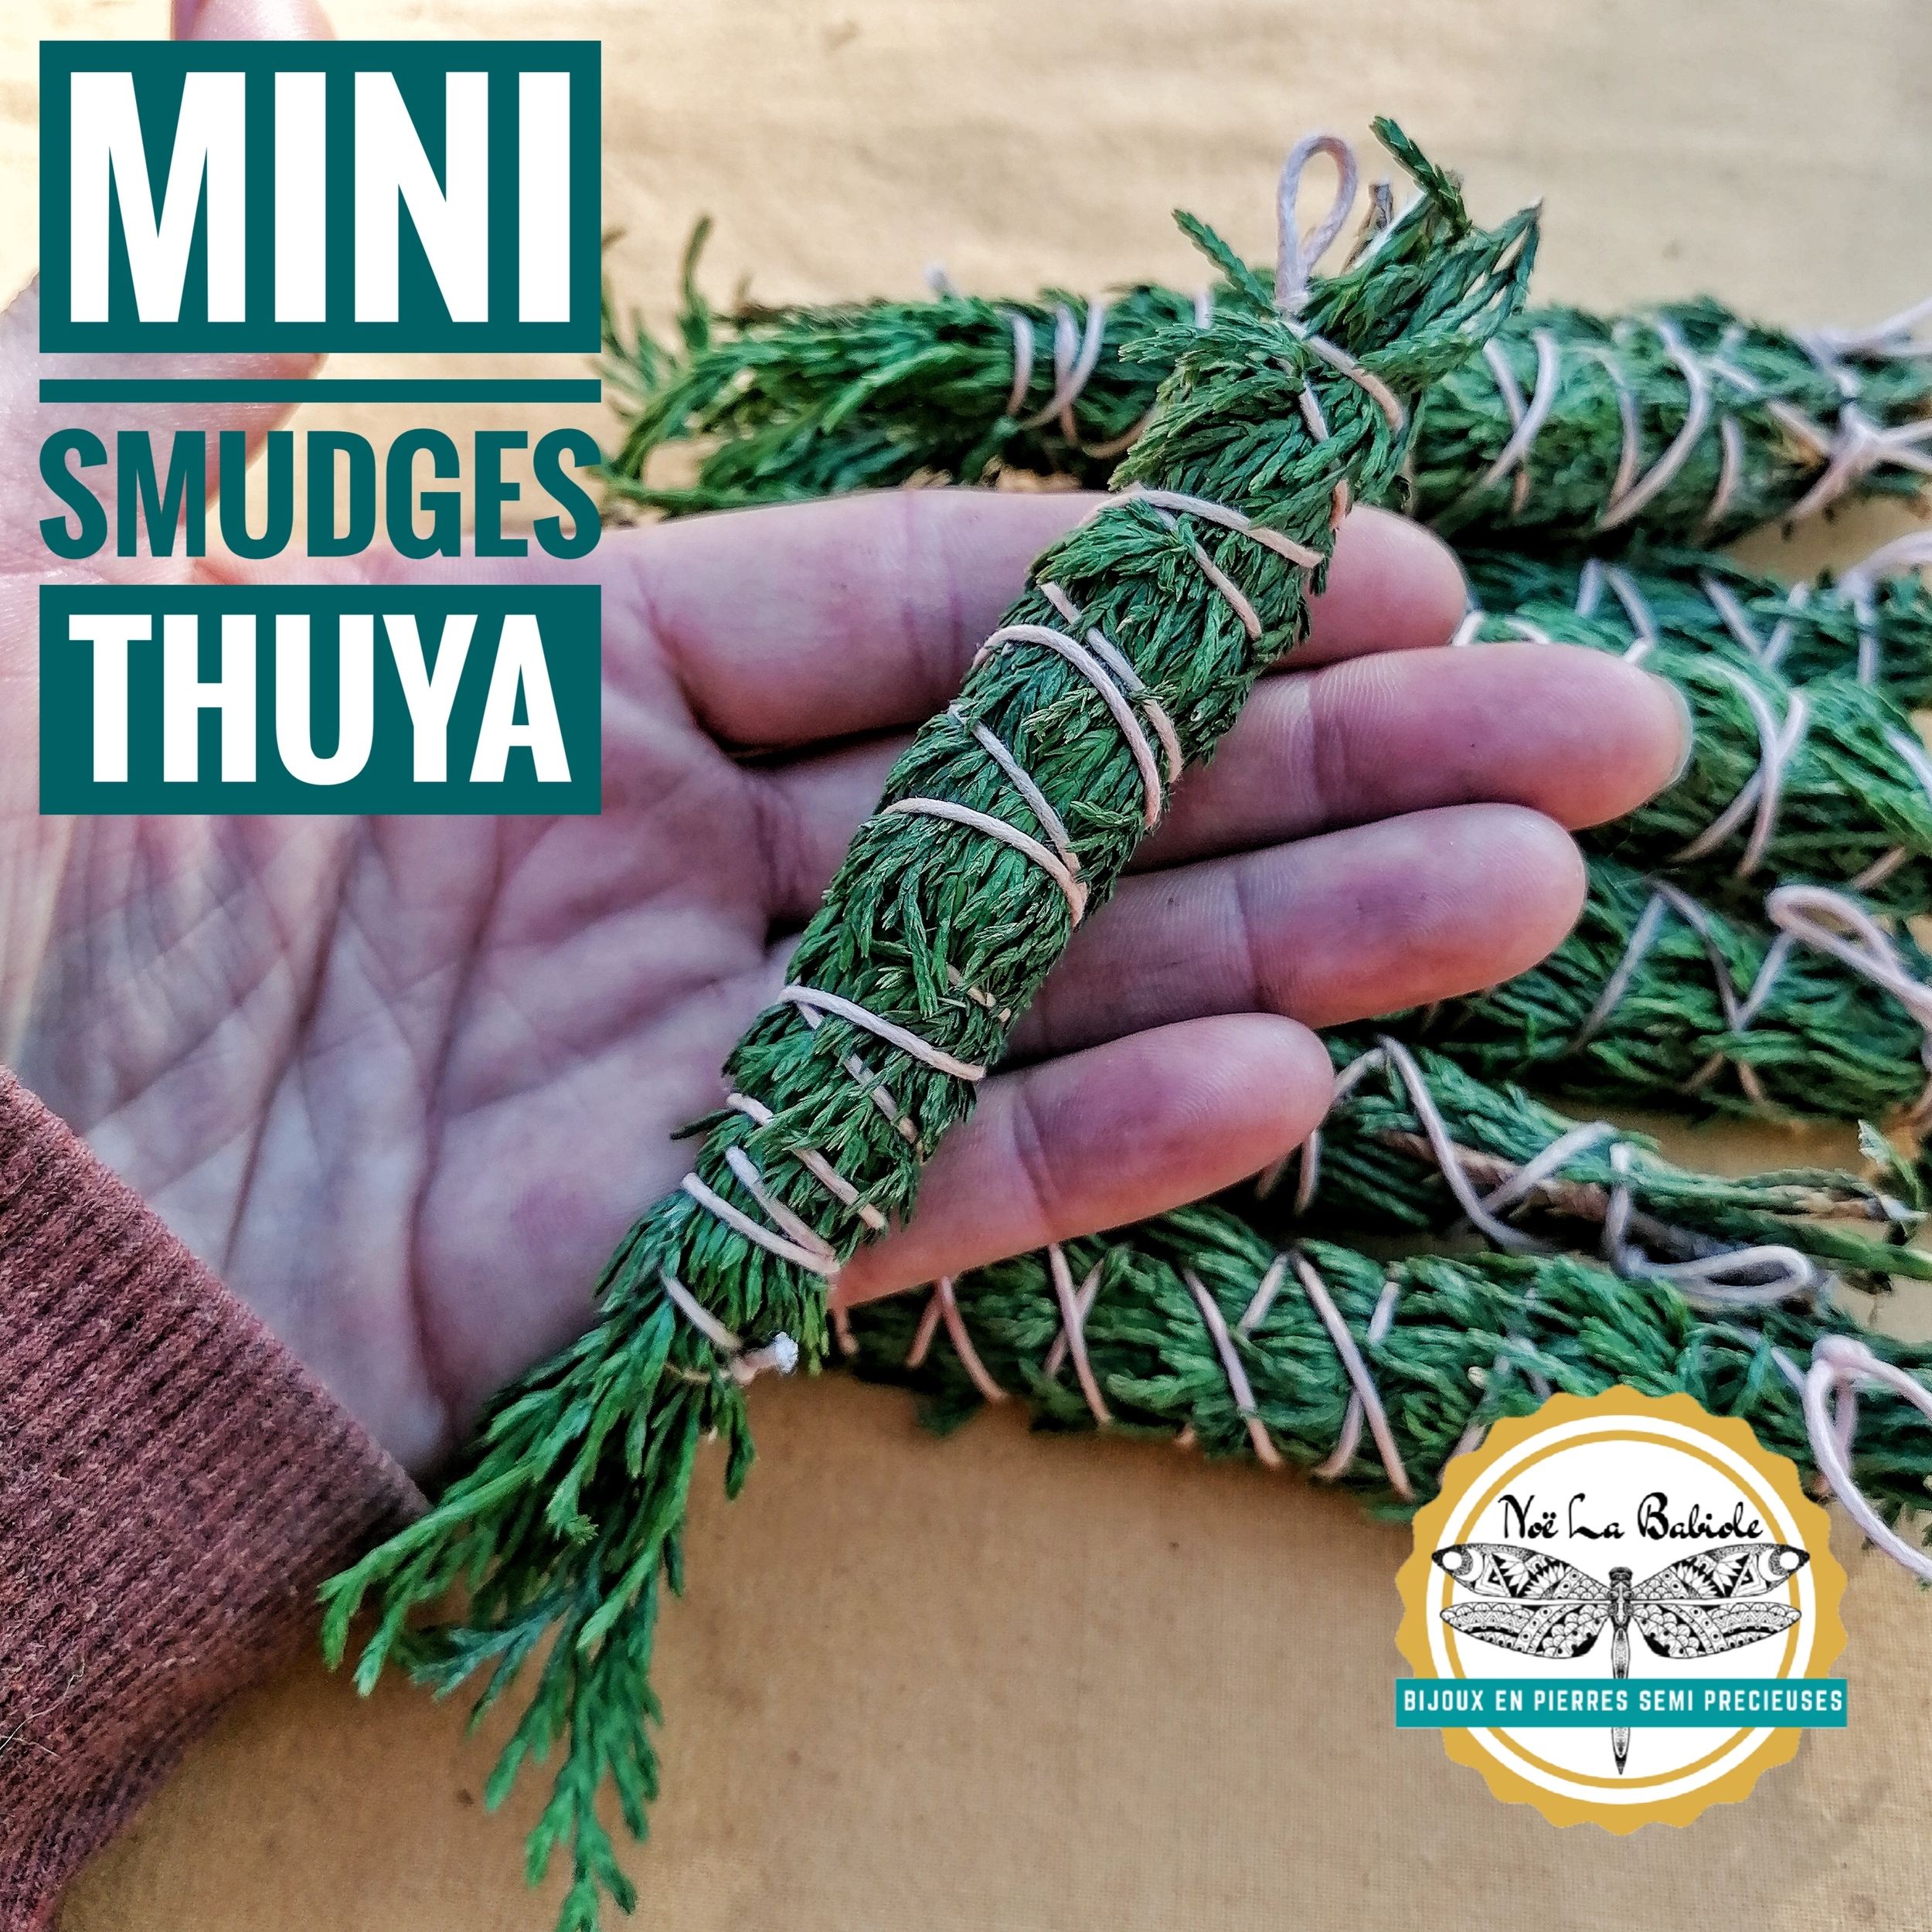 Mini Smudge Thuya - Purification & Harmonie